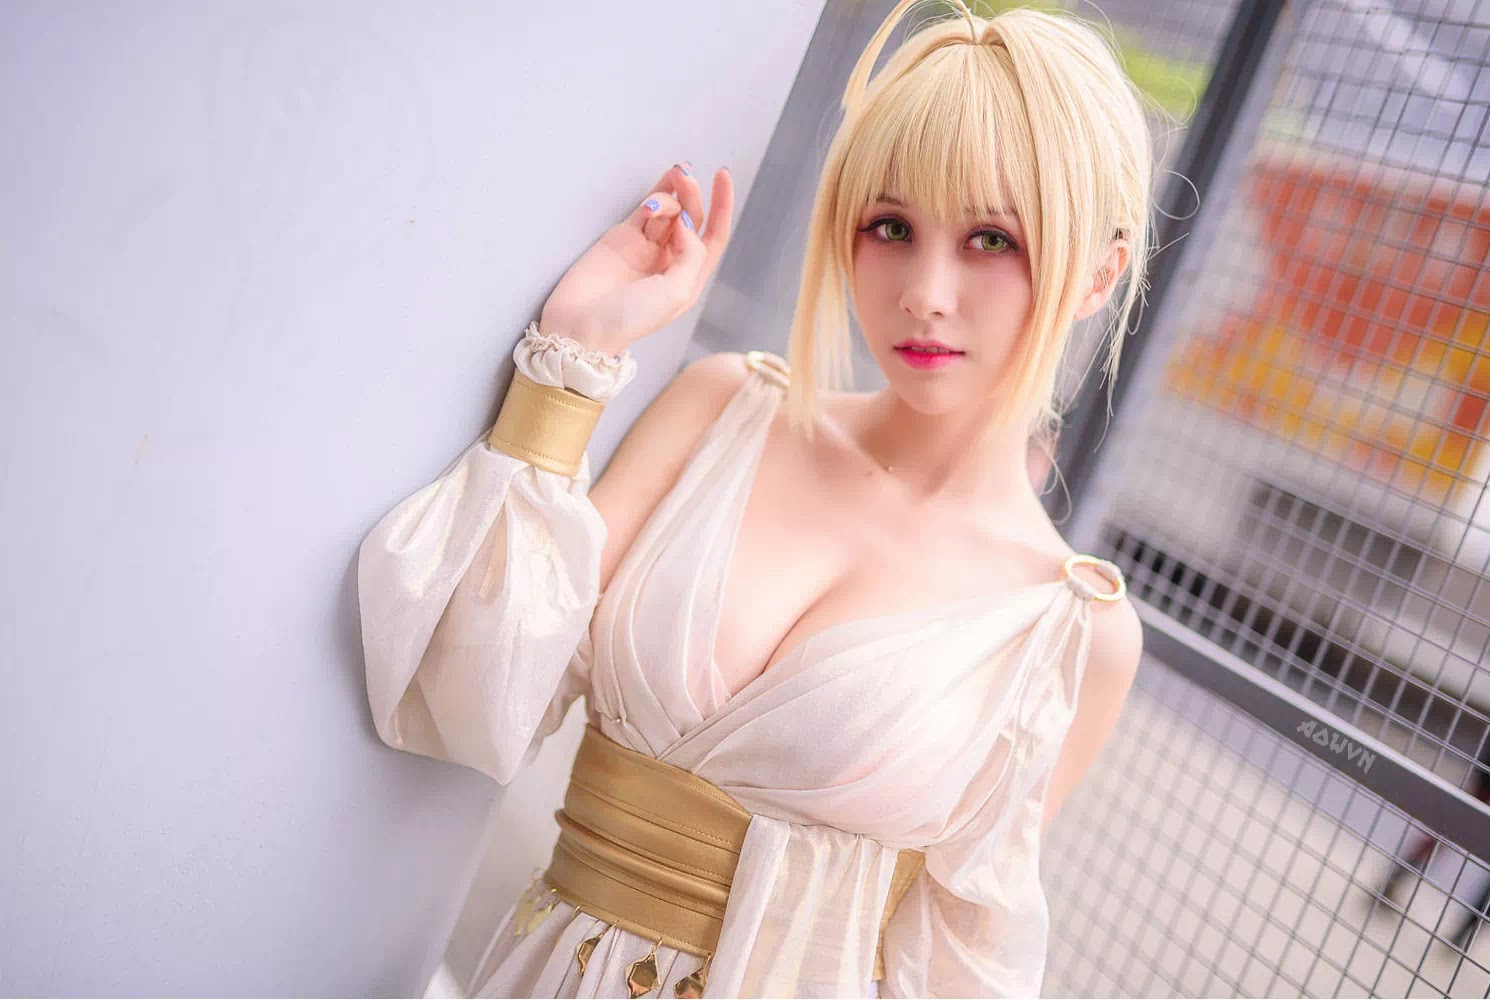 AowVN.org minz%2B%252826%2529 - [ Cosplay ] Nero - Saber anime Fate by Xia Mei Jiang tuyệt đẹp | AowVN Wallpapers